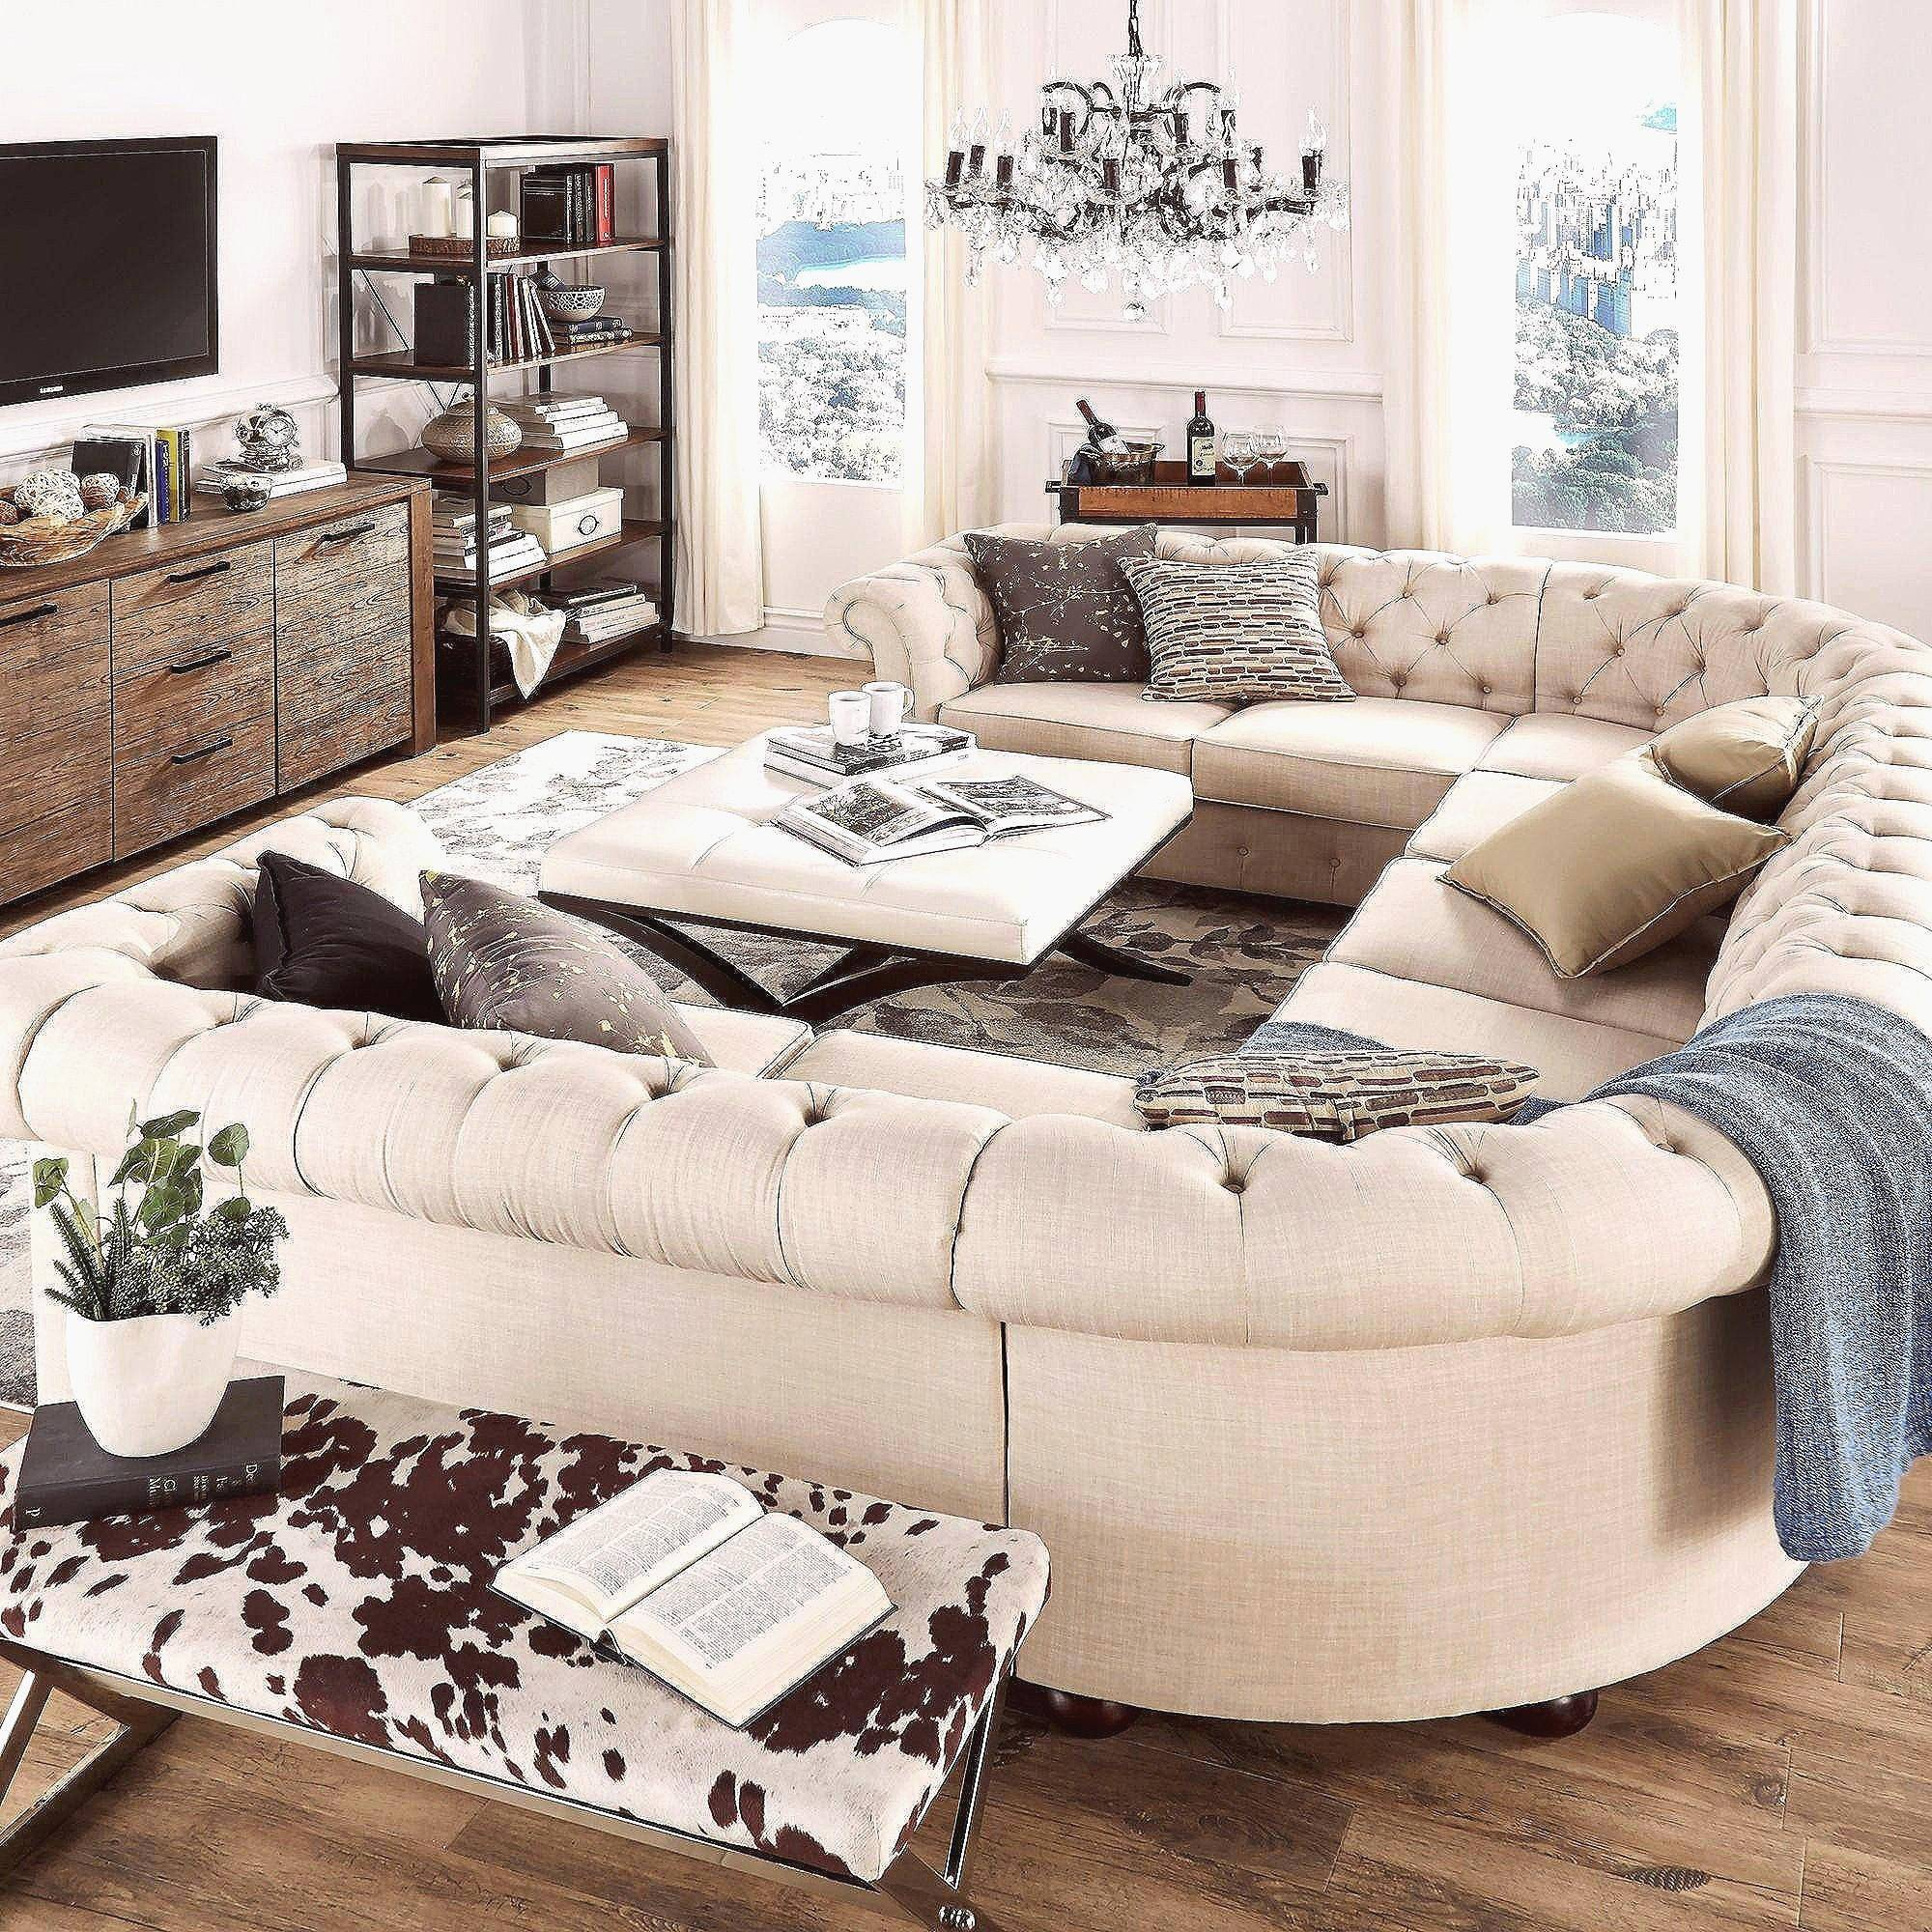 living room decor vintage modern awesome vintage living room ideas of living room decor vintage